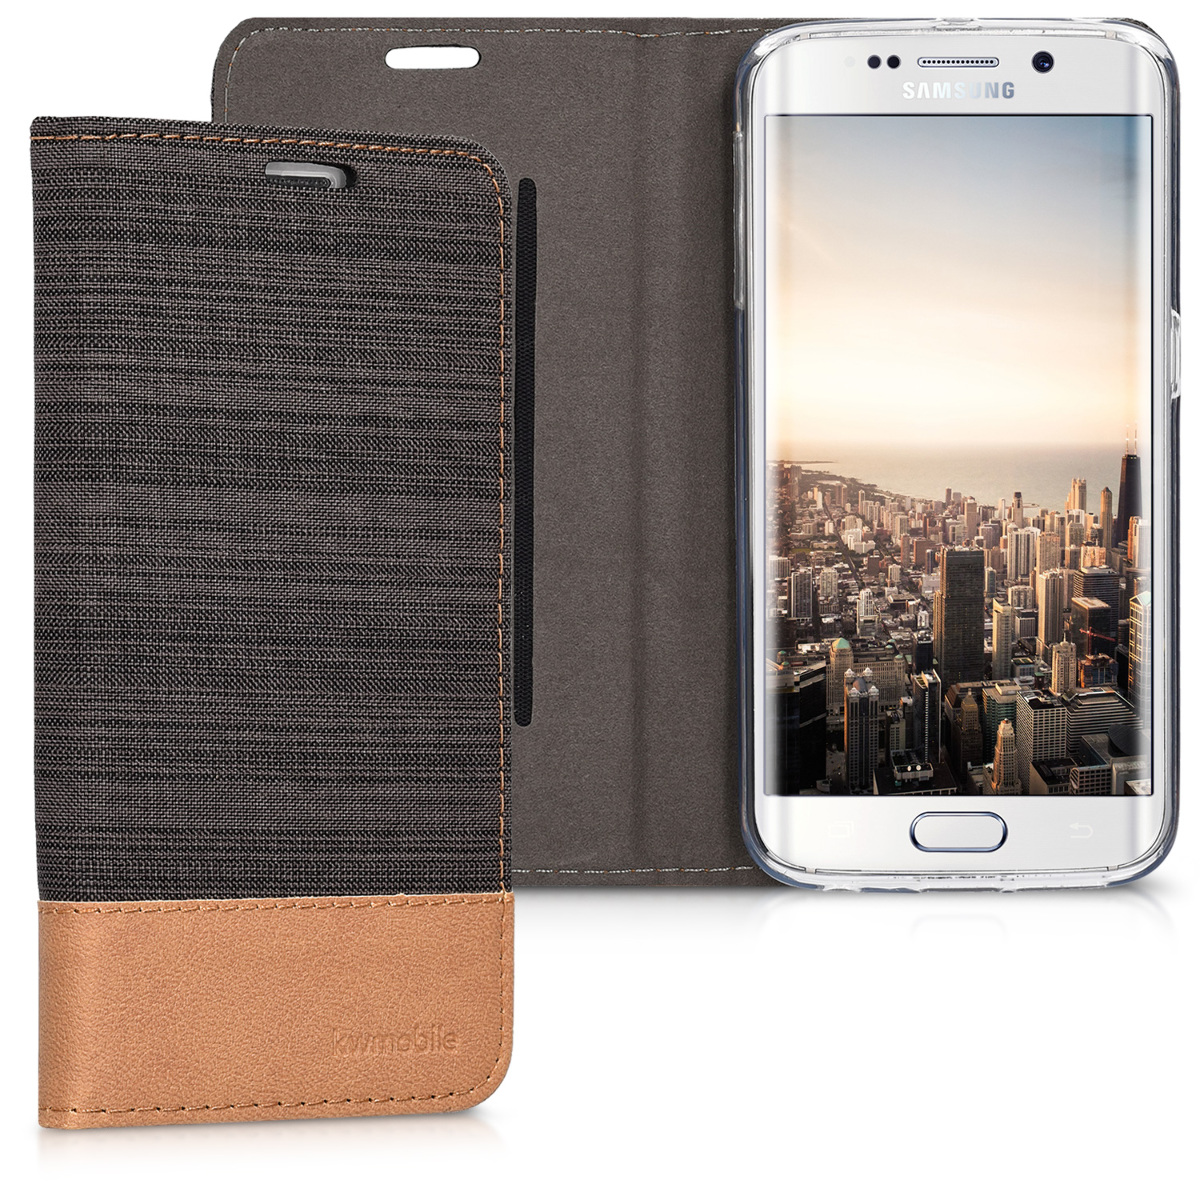 Fabricpouzdro pro Samsung S6 Edge - Antracit / Brown